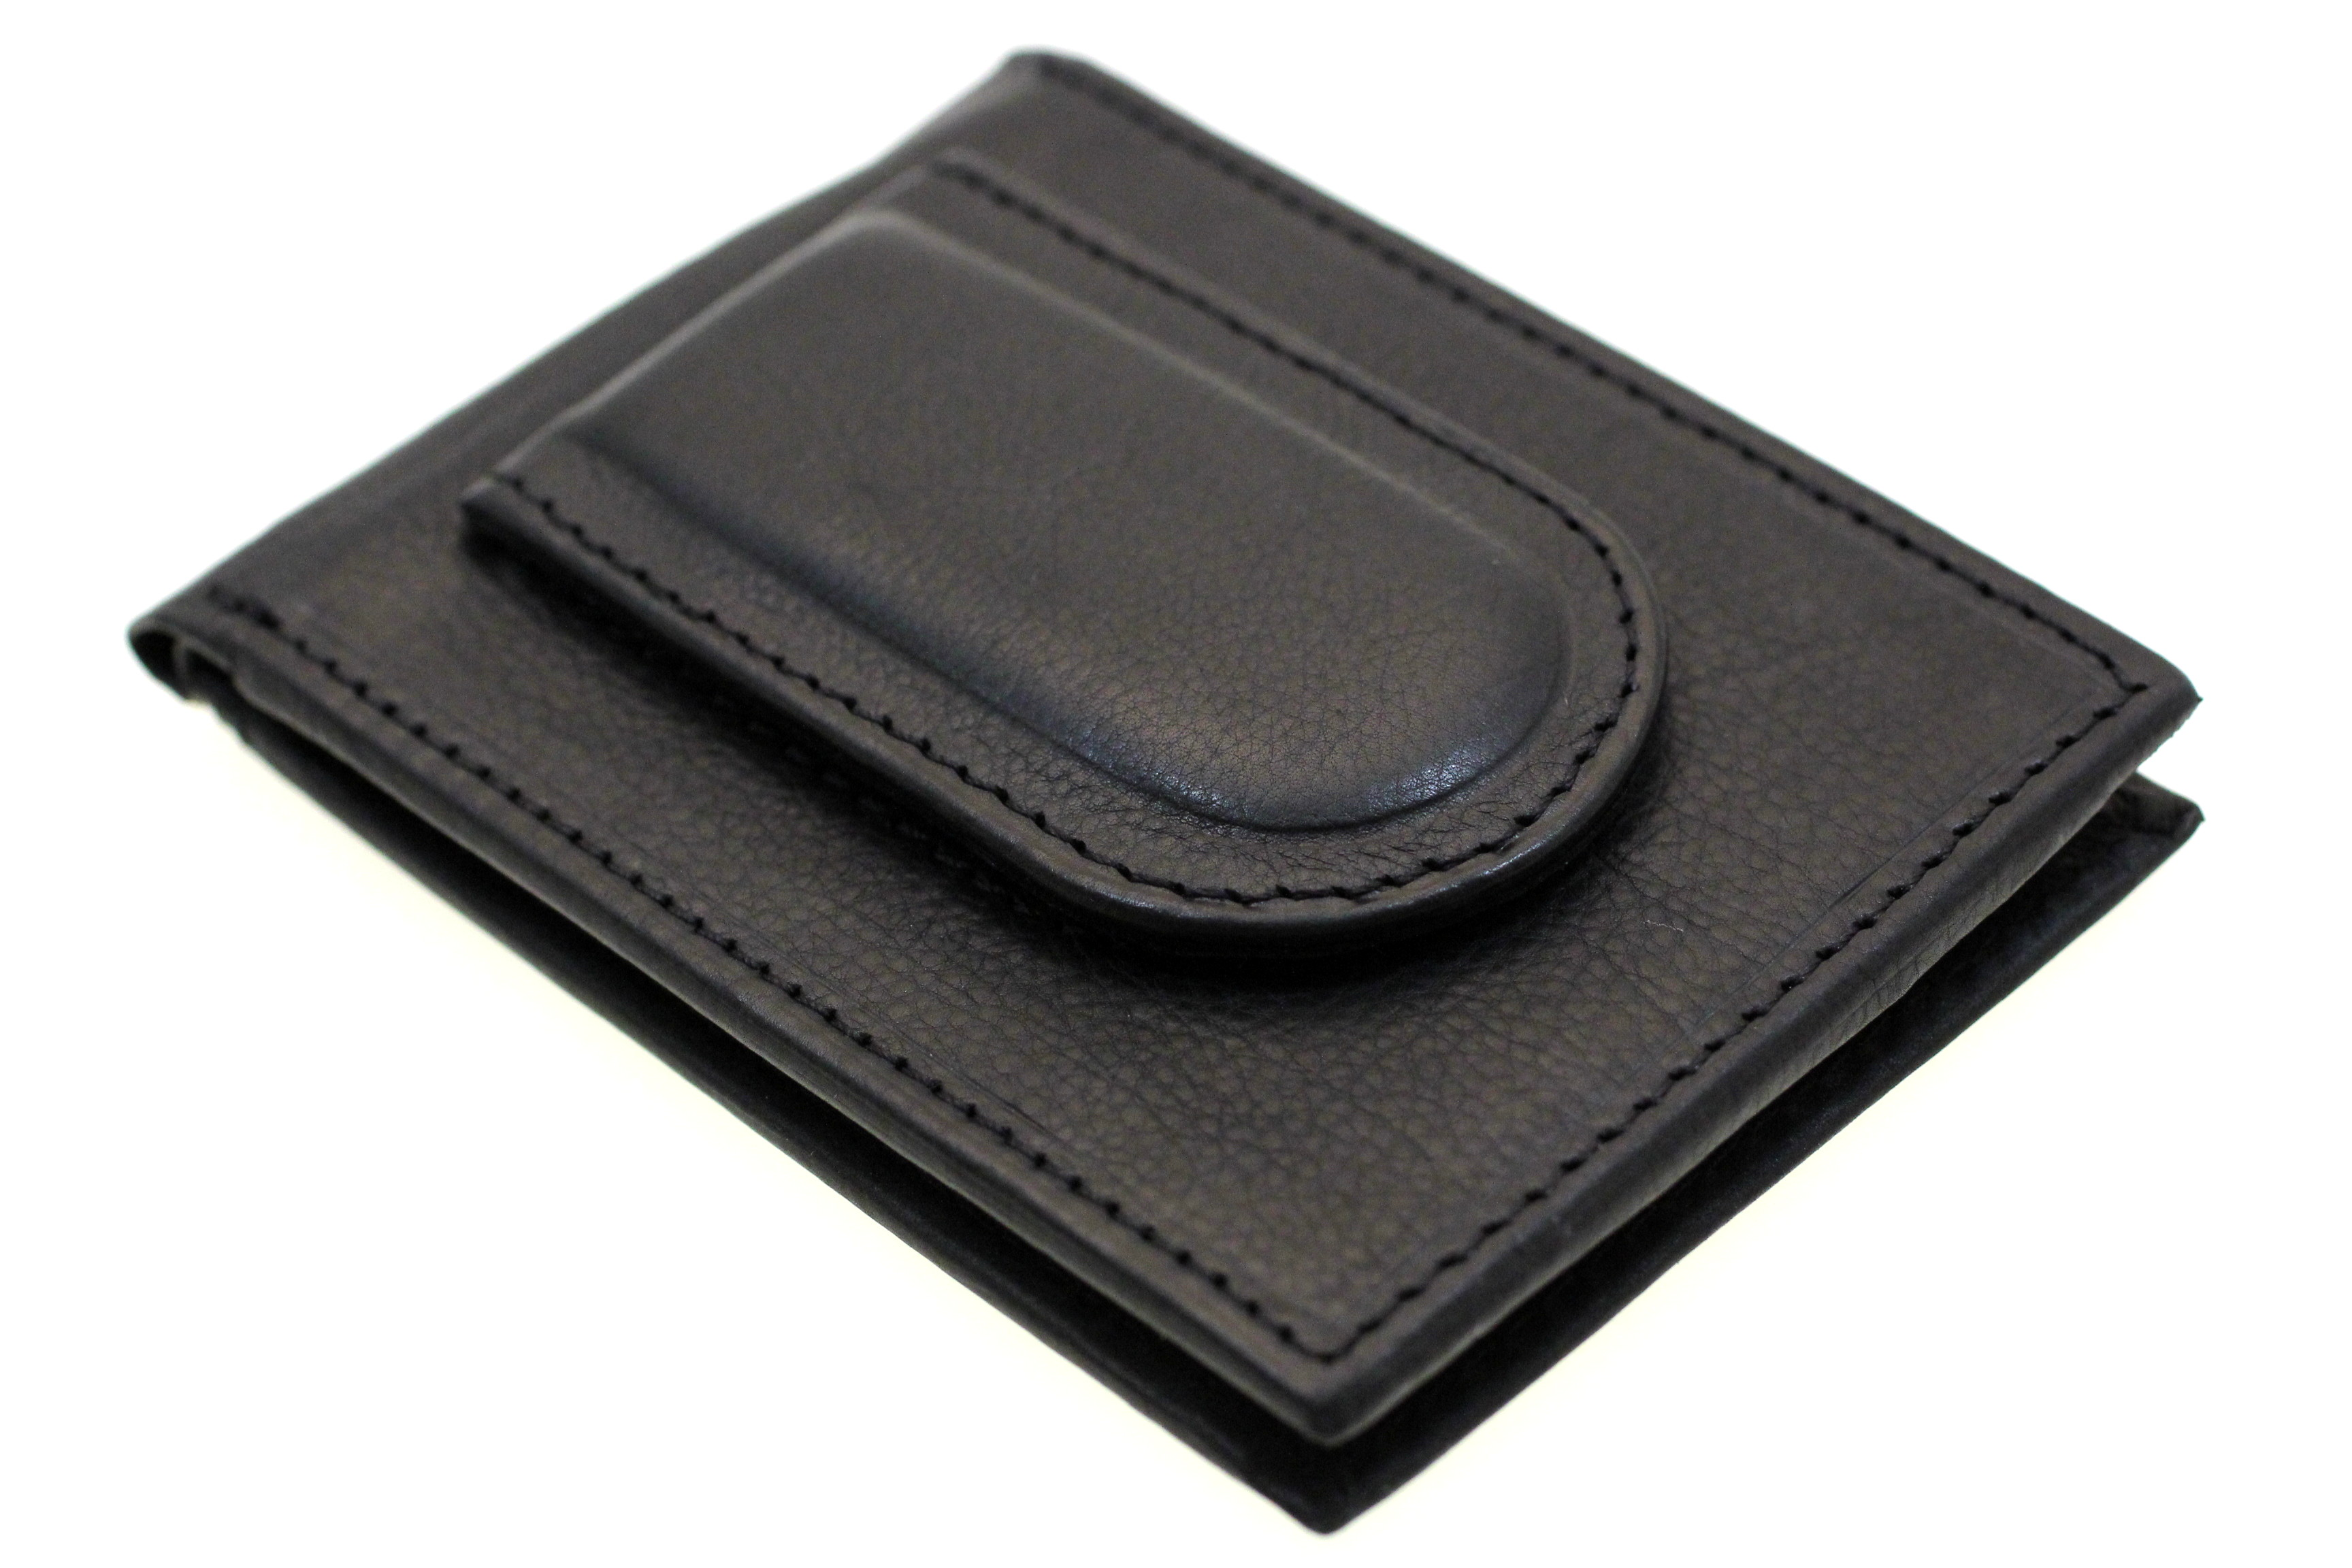 d15b6dbd0a78 Mens Wallet With Magnetic Money Clip Outside | Stanford Center for ...